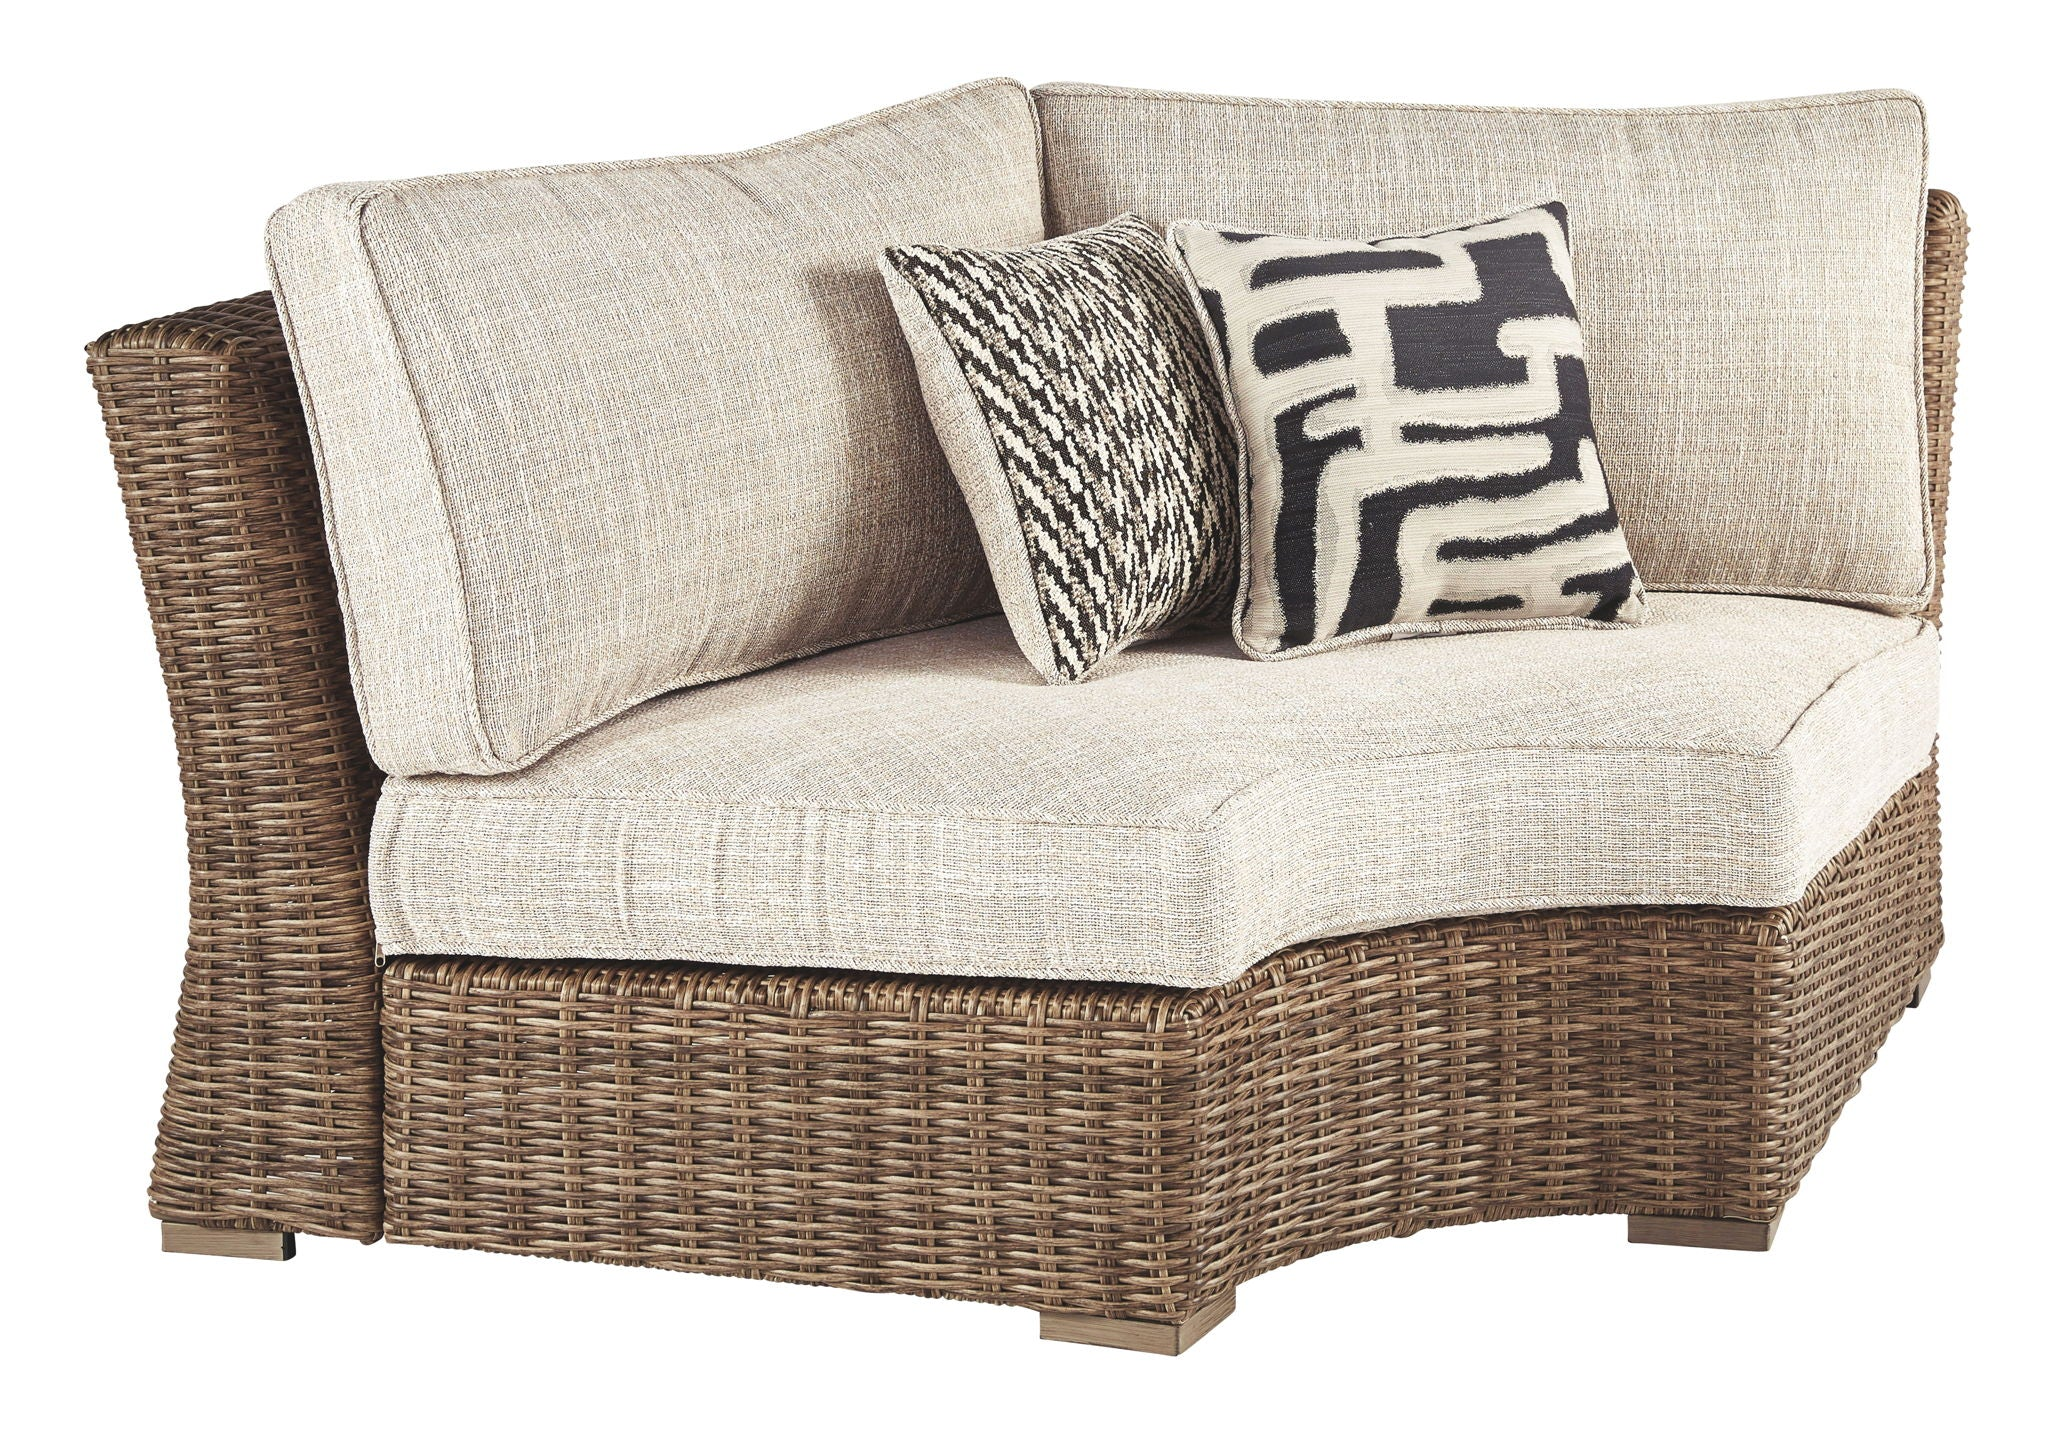 Beachcroft Curved Corner Chair with Cushion | Calgary's Furniture Store